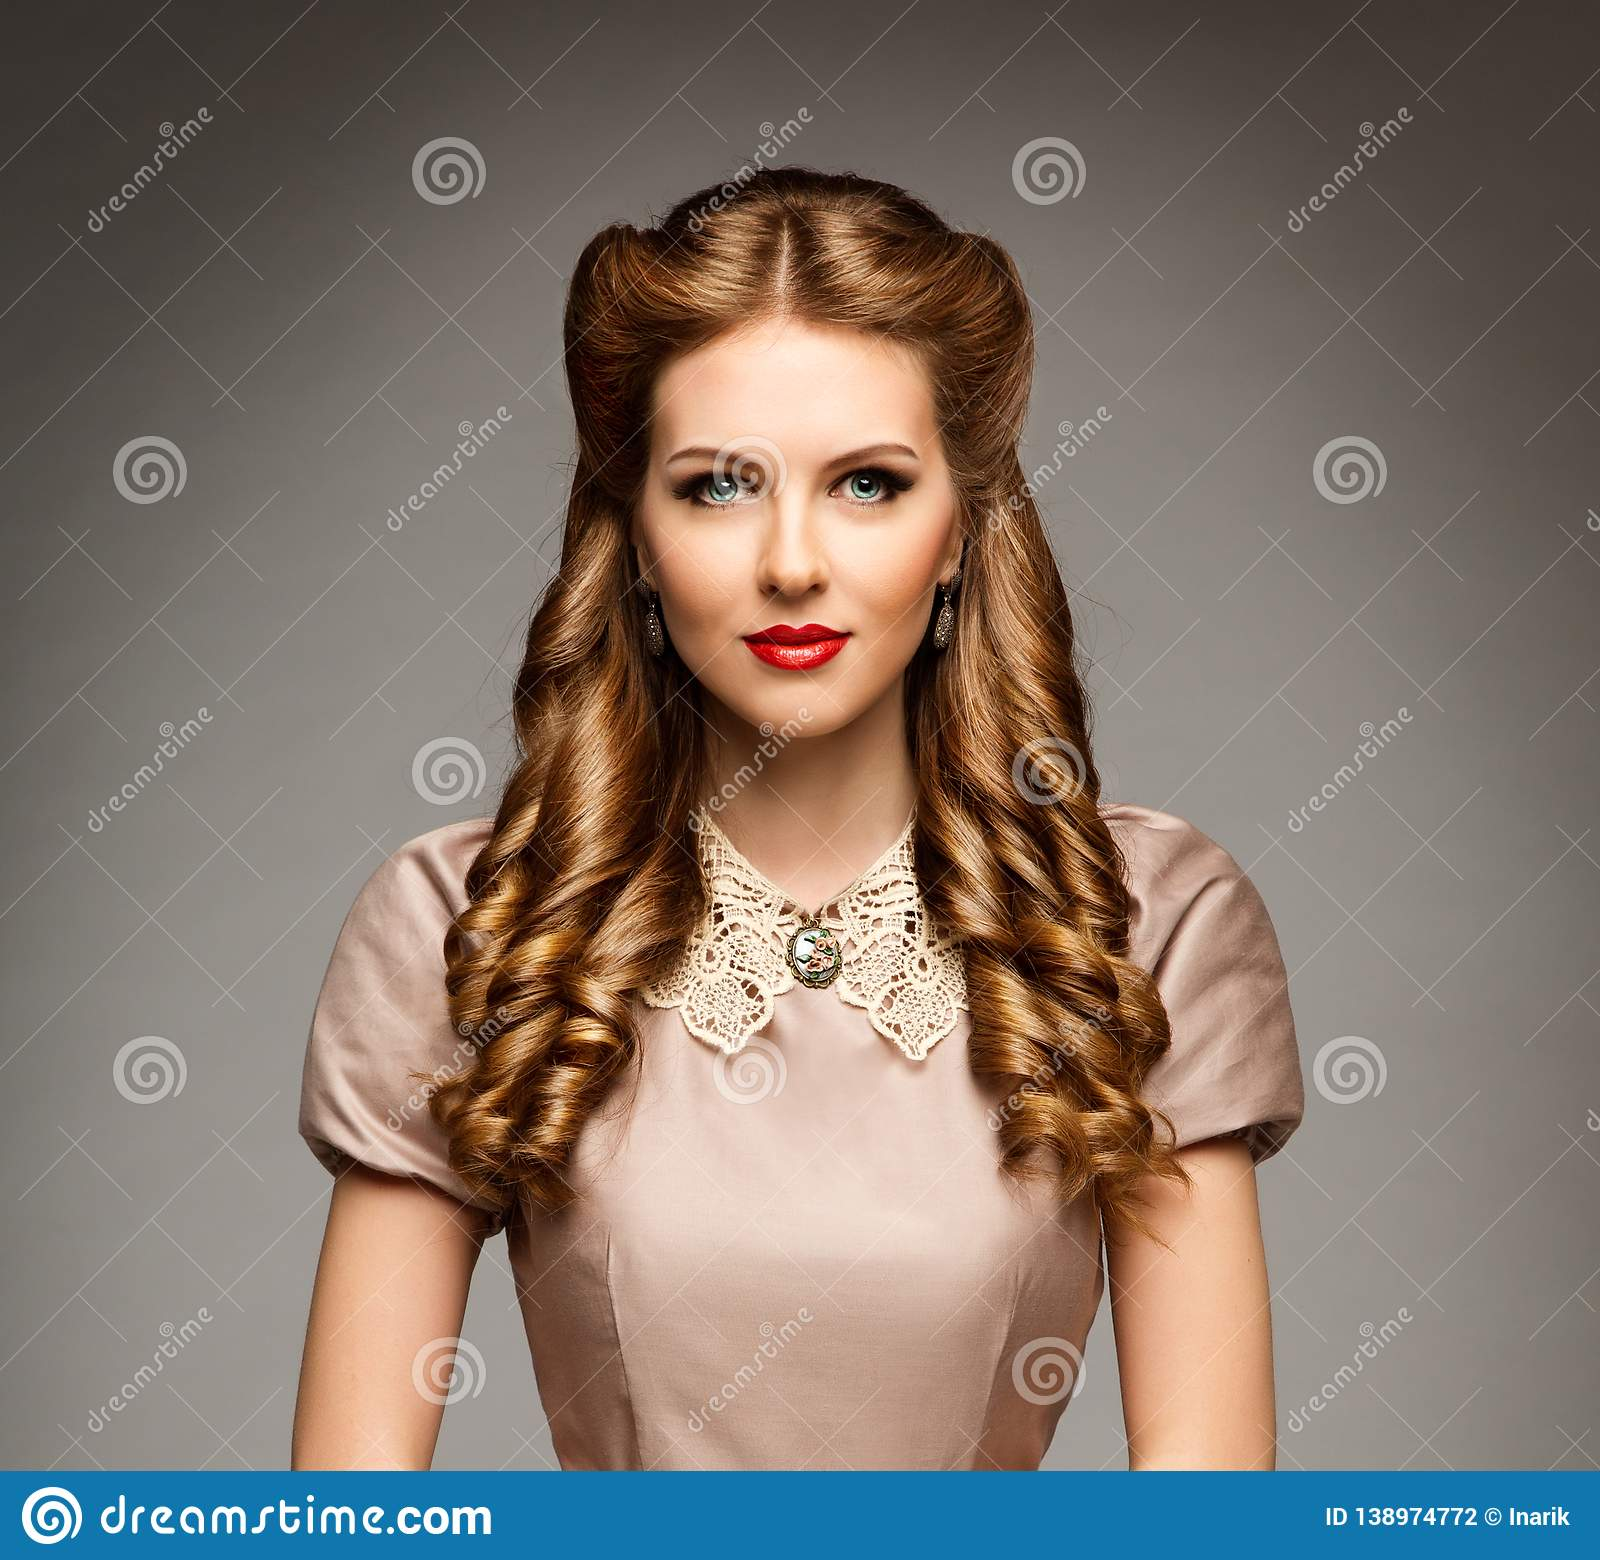 Fashion Model Retro Hairstyle, Elegant Woman Old Fashioned Curly